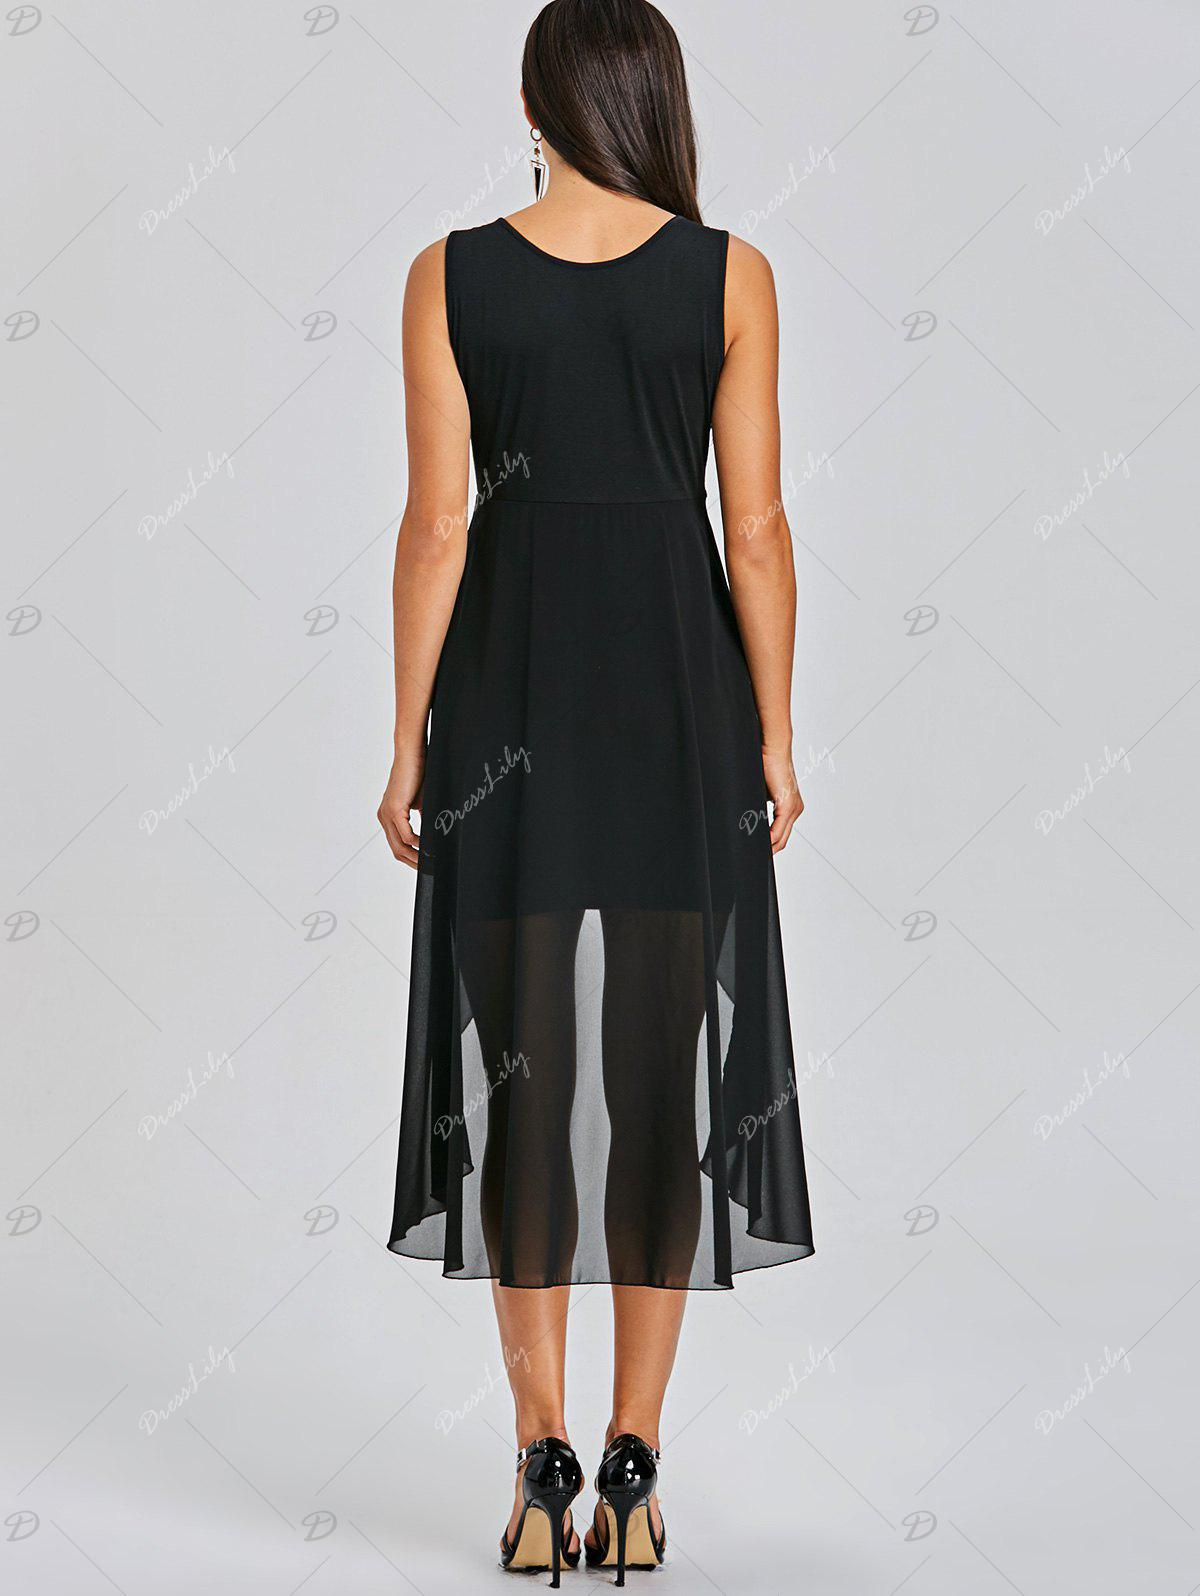 Sleeveless Fitted Dress with Overlay Skirt - BLACK 2XL